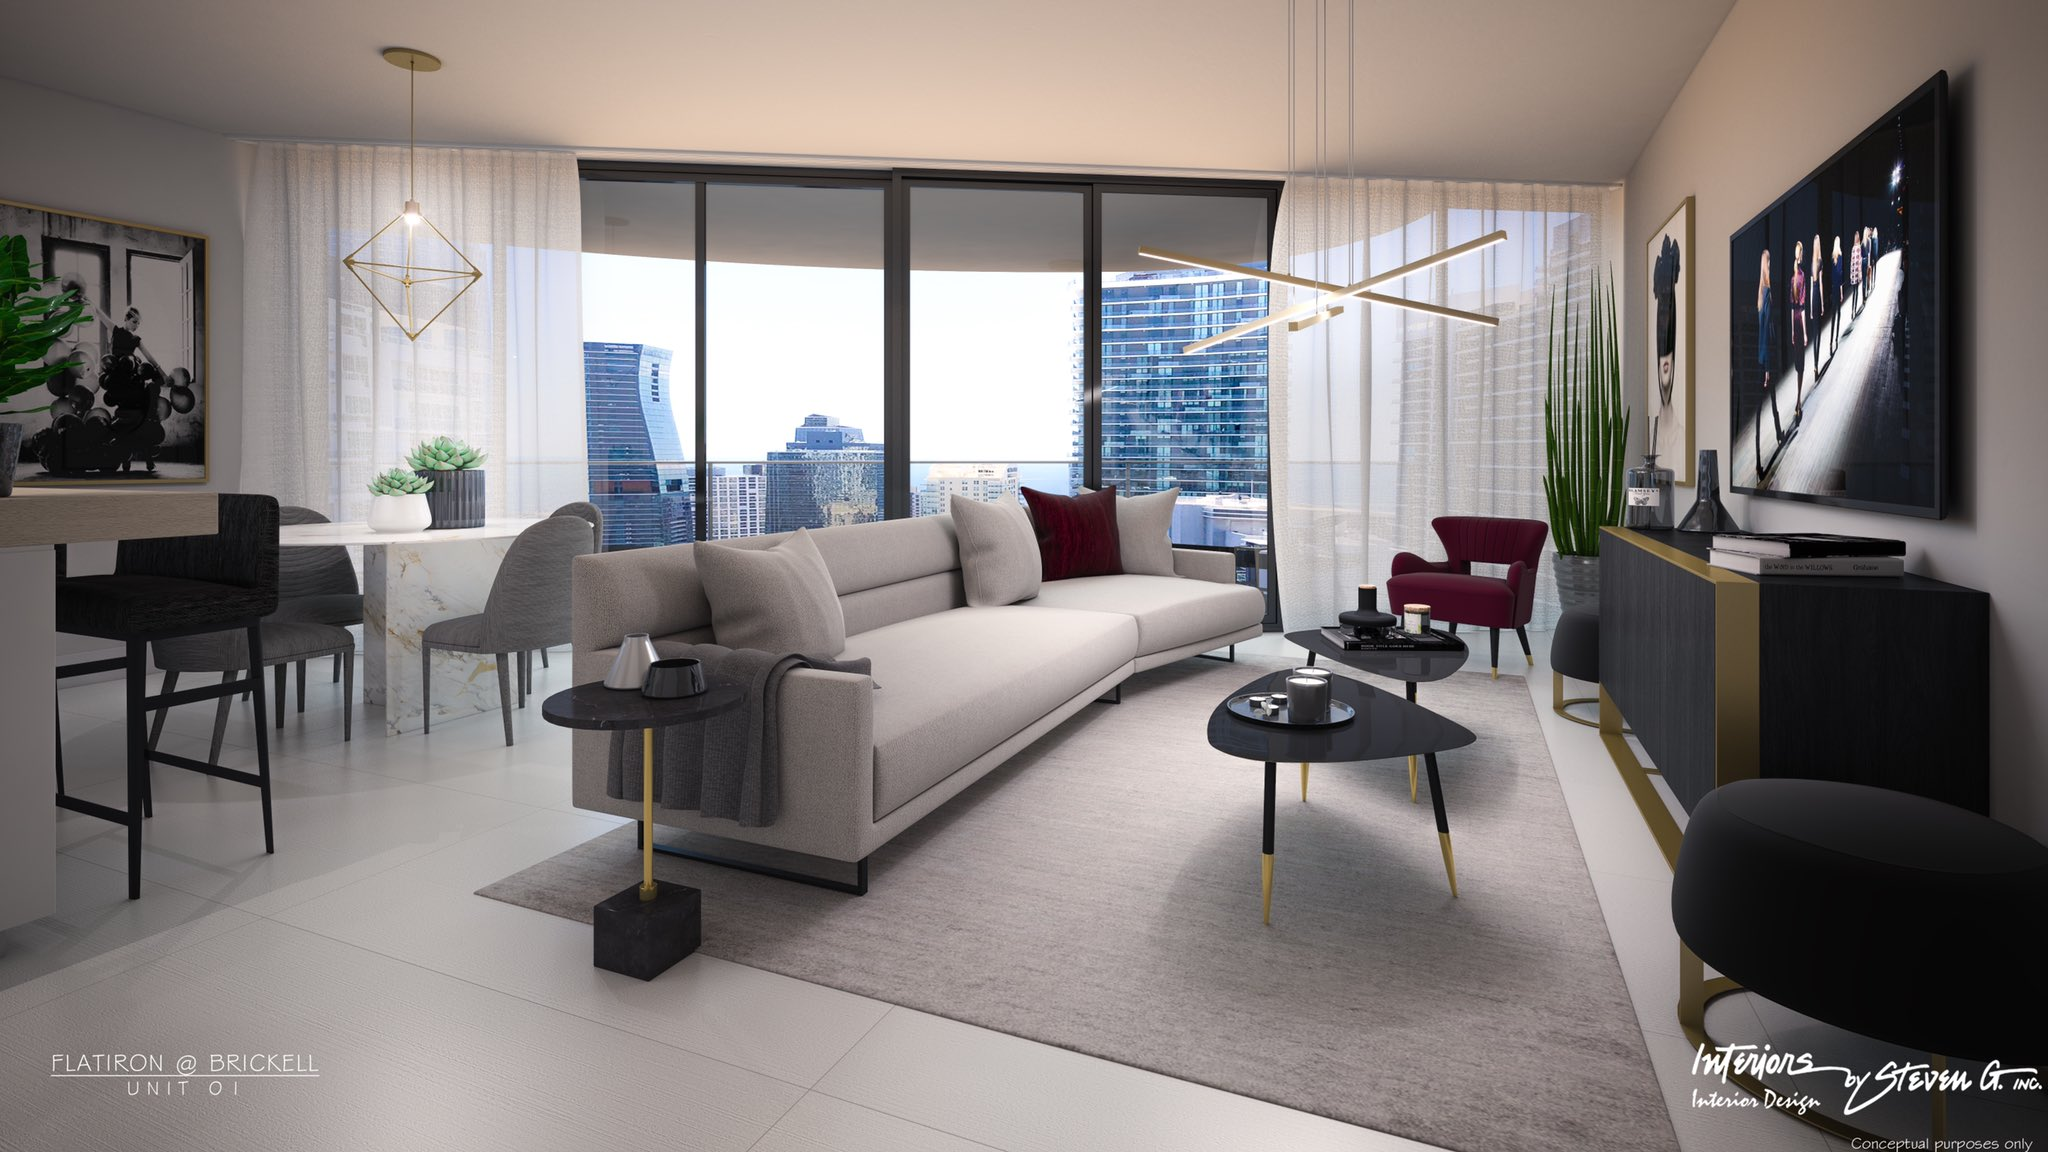 Interiors By Steven G On Twitter If You Haven T Heard Yet We Are Bringing Our Designs To Brickell Flatiron Ibsg Will Be Designing 4 New Model Units Two Of Which Will